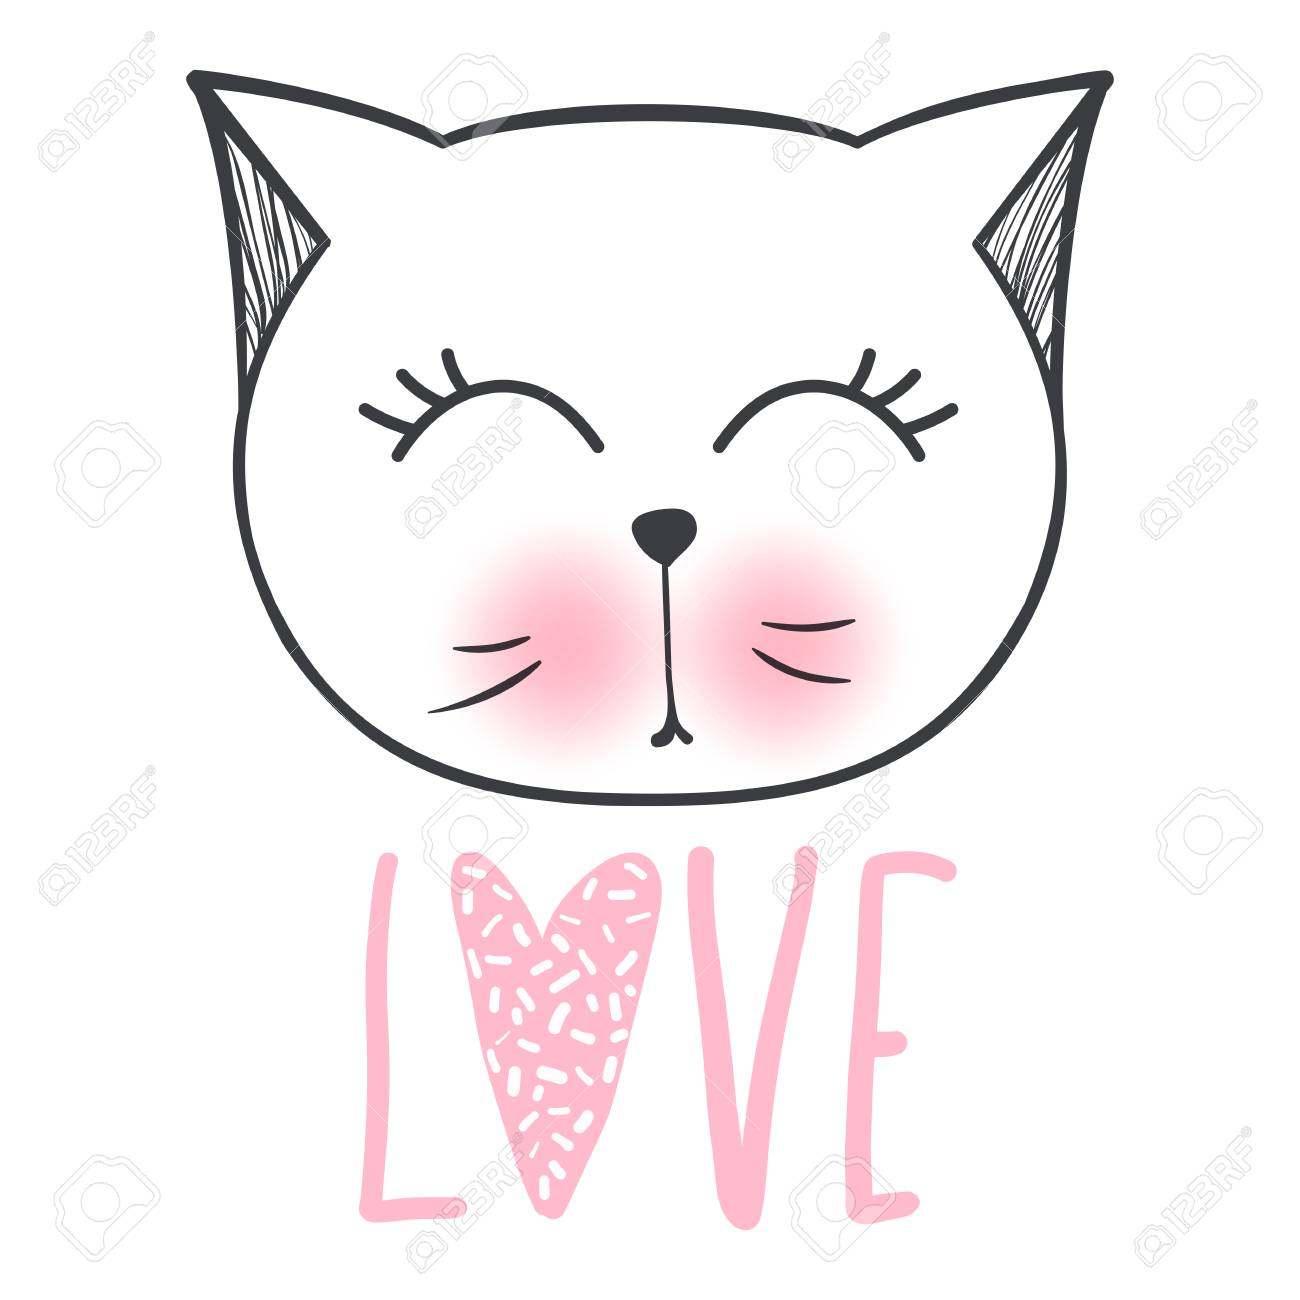 Cute Cat Vector Design Girly Kittens Fashion Cat S Face Animal